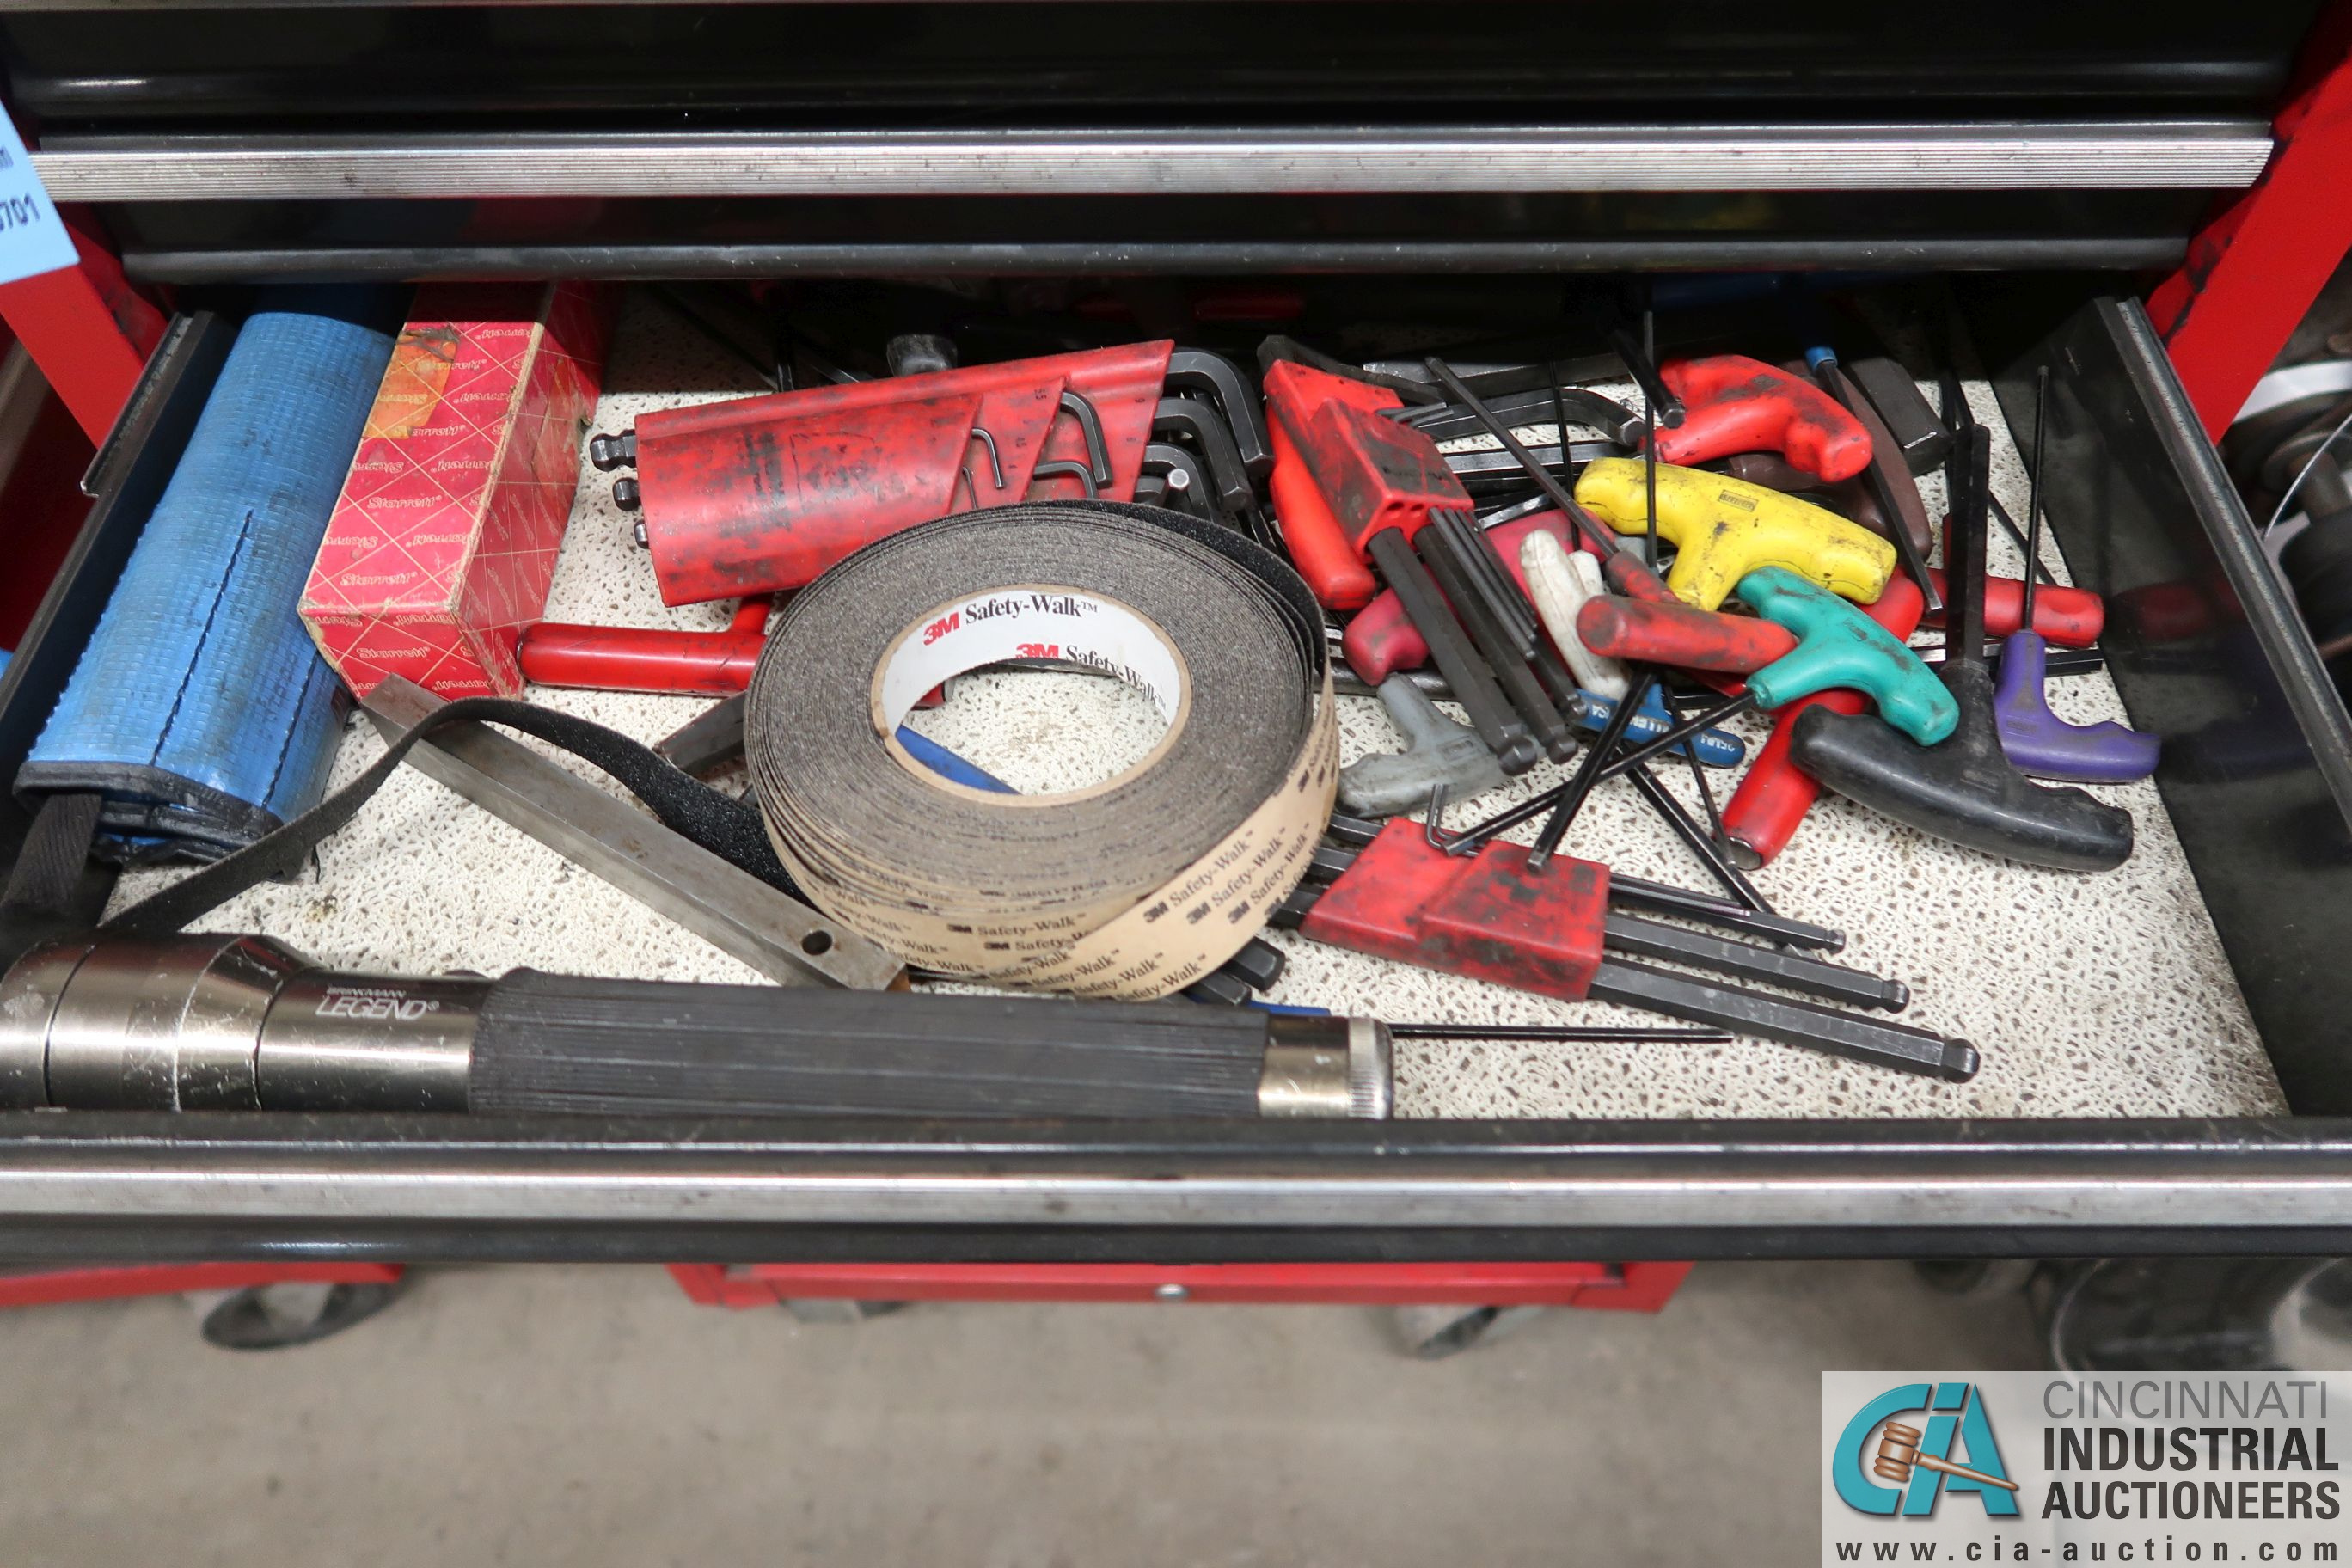 8-DRAWER CRAFTSMAN PORTABLE TOOL BOX WITH TOOLS - Image 4 of 8